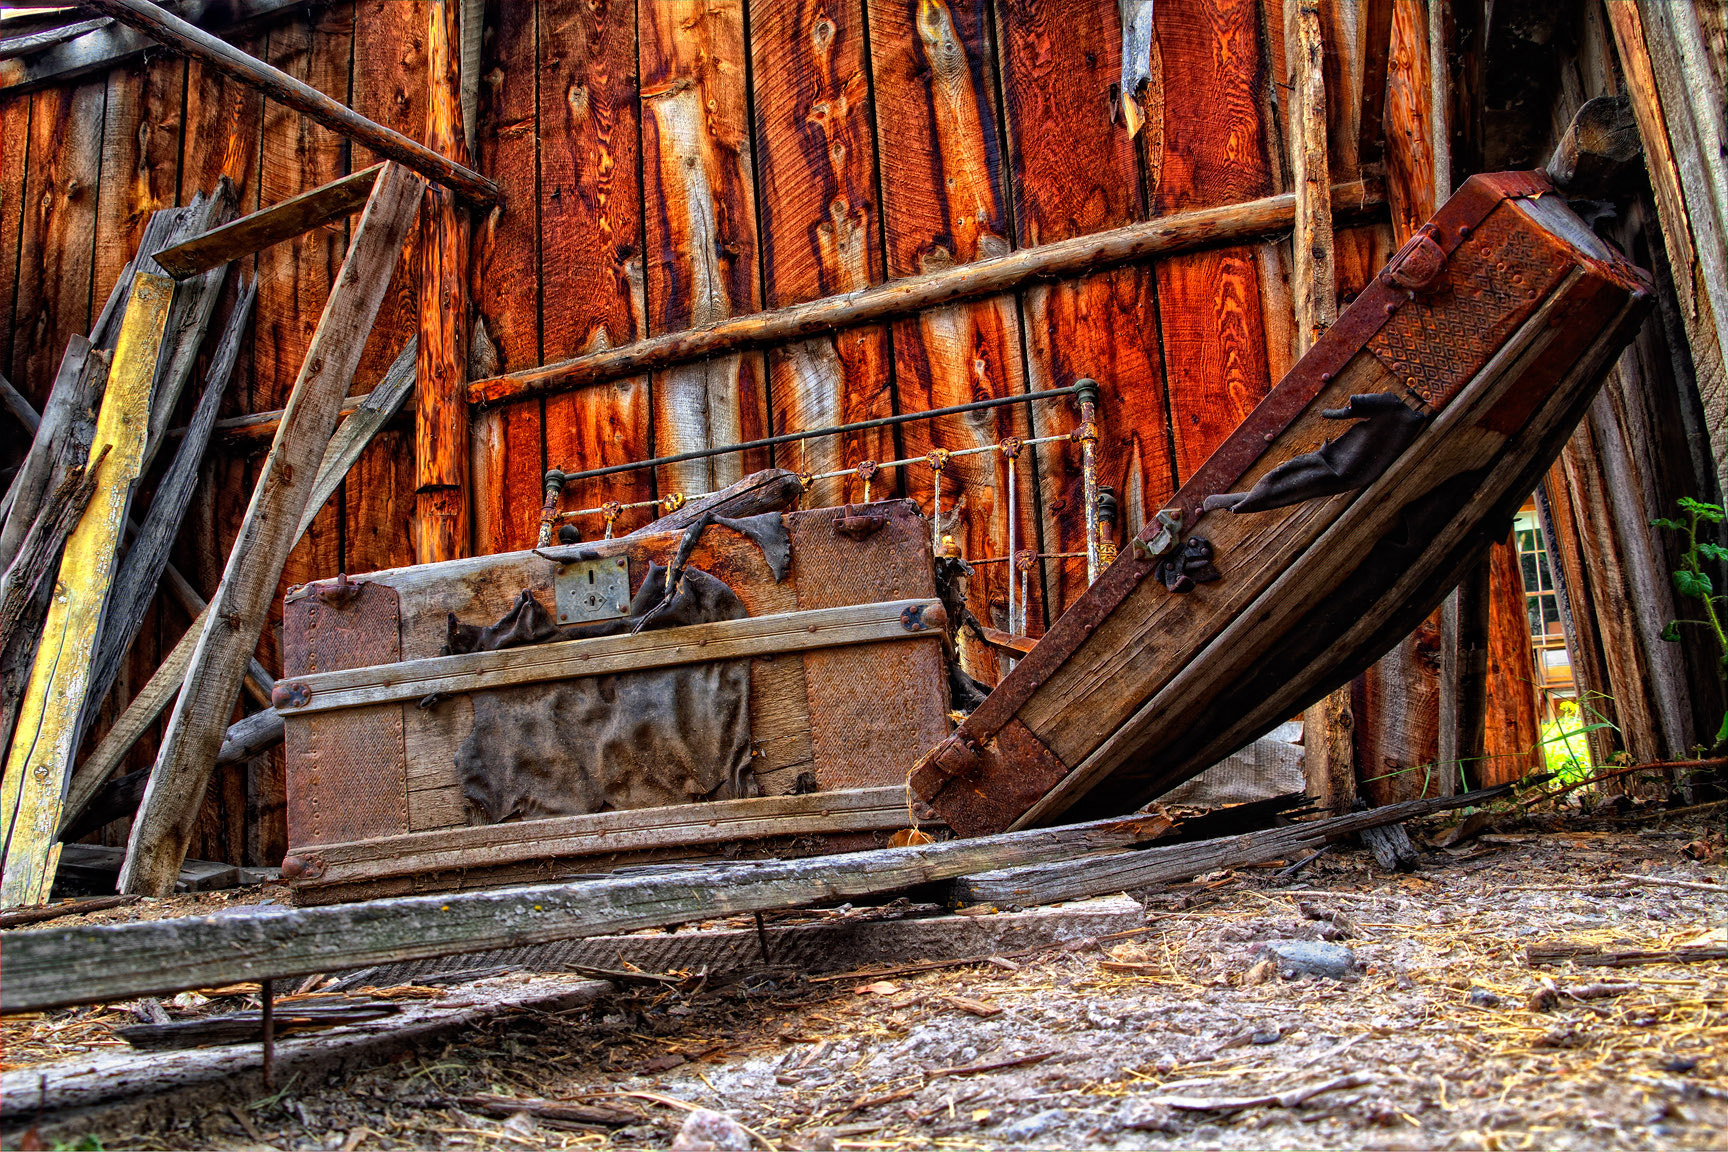 Photograph Rural Decay by Michael Wifall on 500px